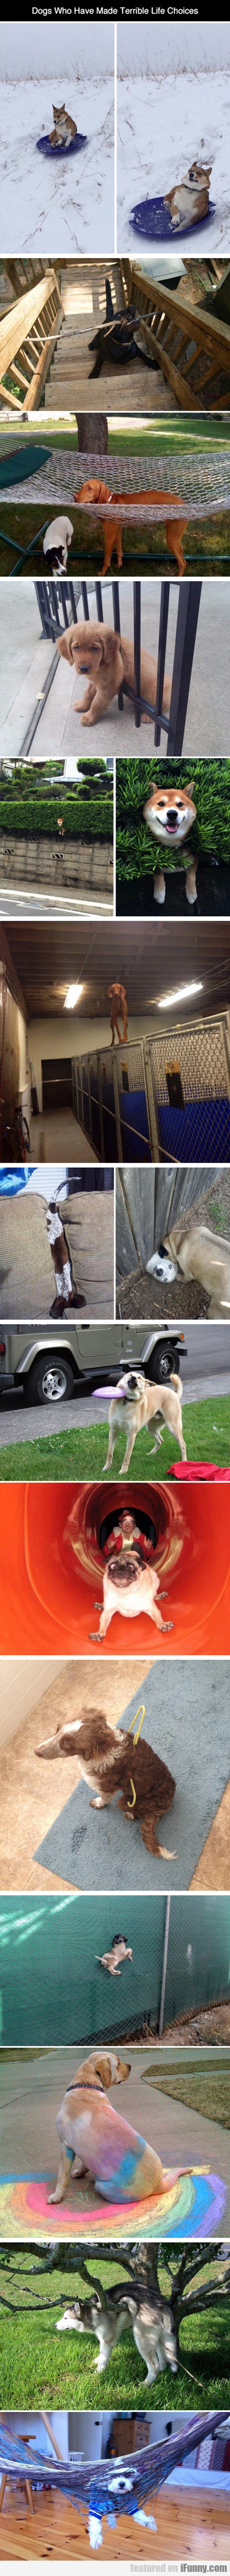 Dogs Who Have Made Terrible Life Choices